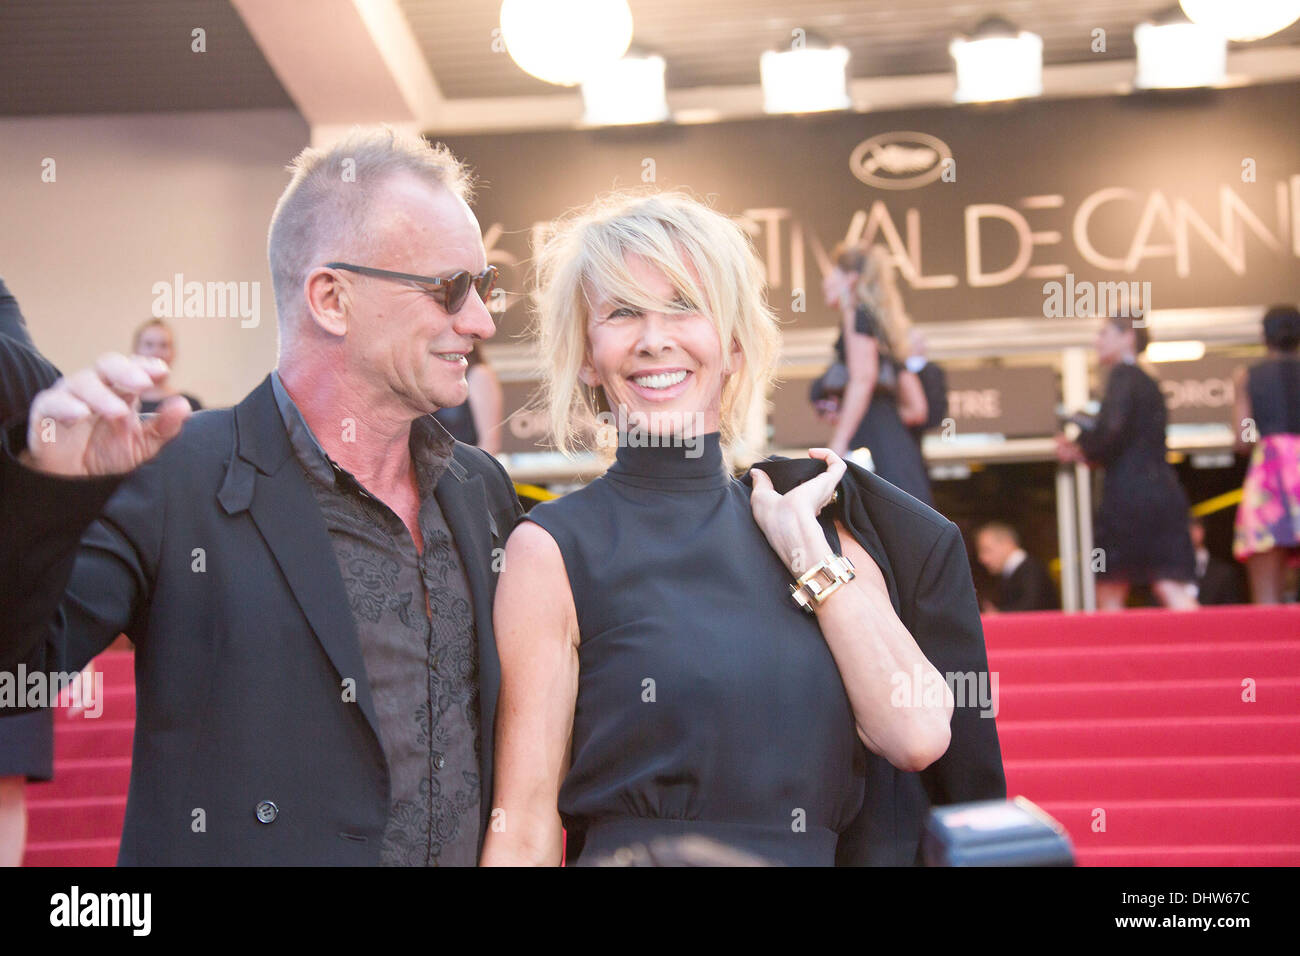 Sting and his wife Trudie Styler,  'Mud' premiere during the 65th Annual Cannes Film Festival. Cannes, France - Stock Photo